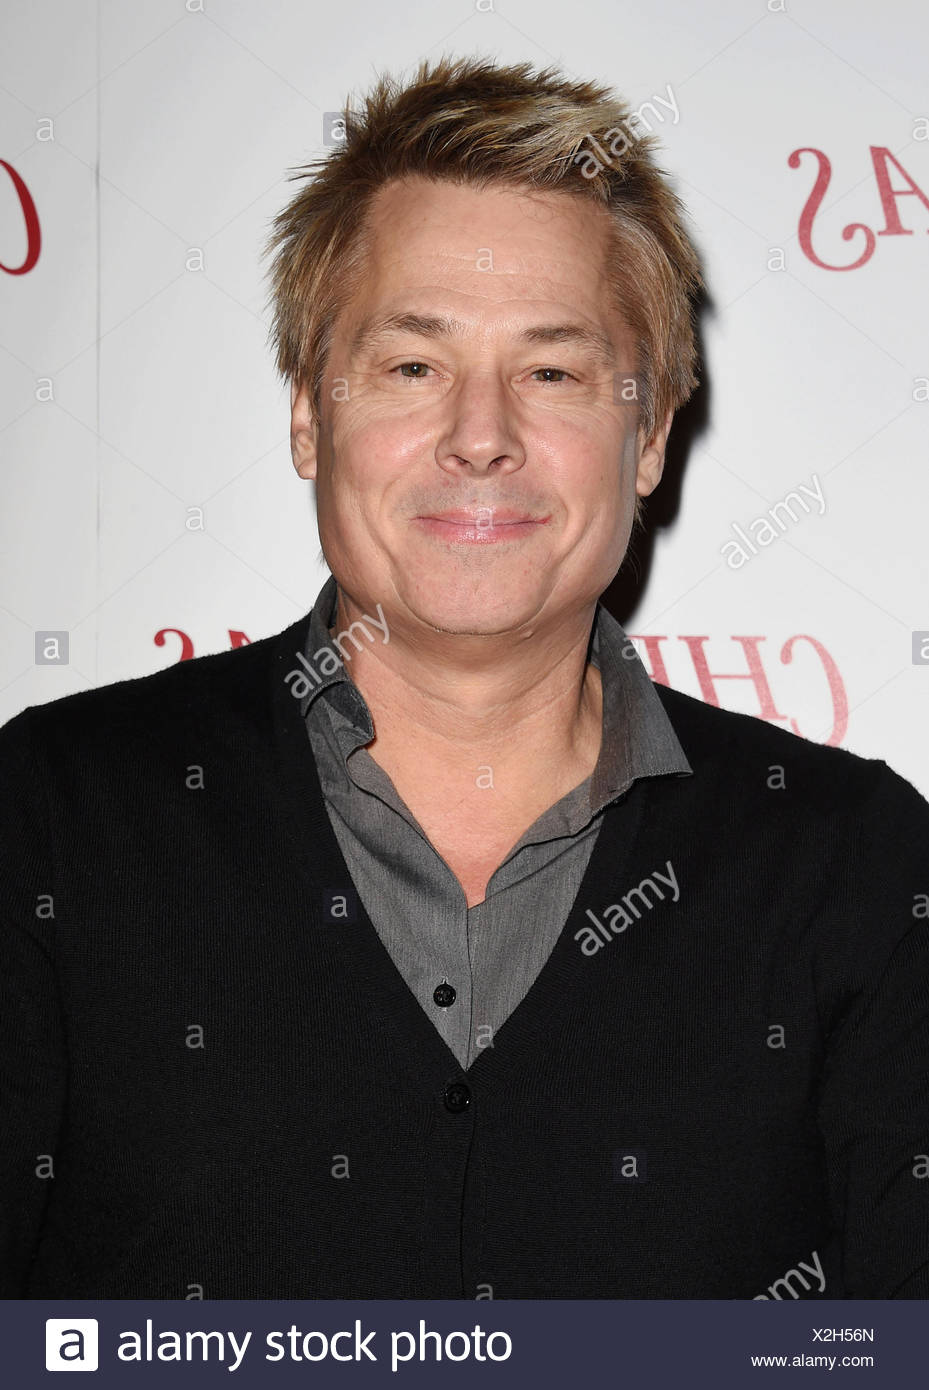 Radio/TV personality Kato Kaelin arrives at the premiere of Unstuck's 'Christmas Eve' at the ArcLight Hollywood on December 2, 2015 in Hollywood, California., Additional-Rights-Clearances-NA - Stock Image